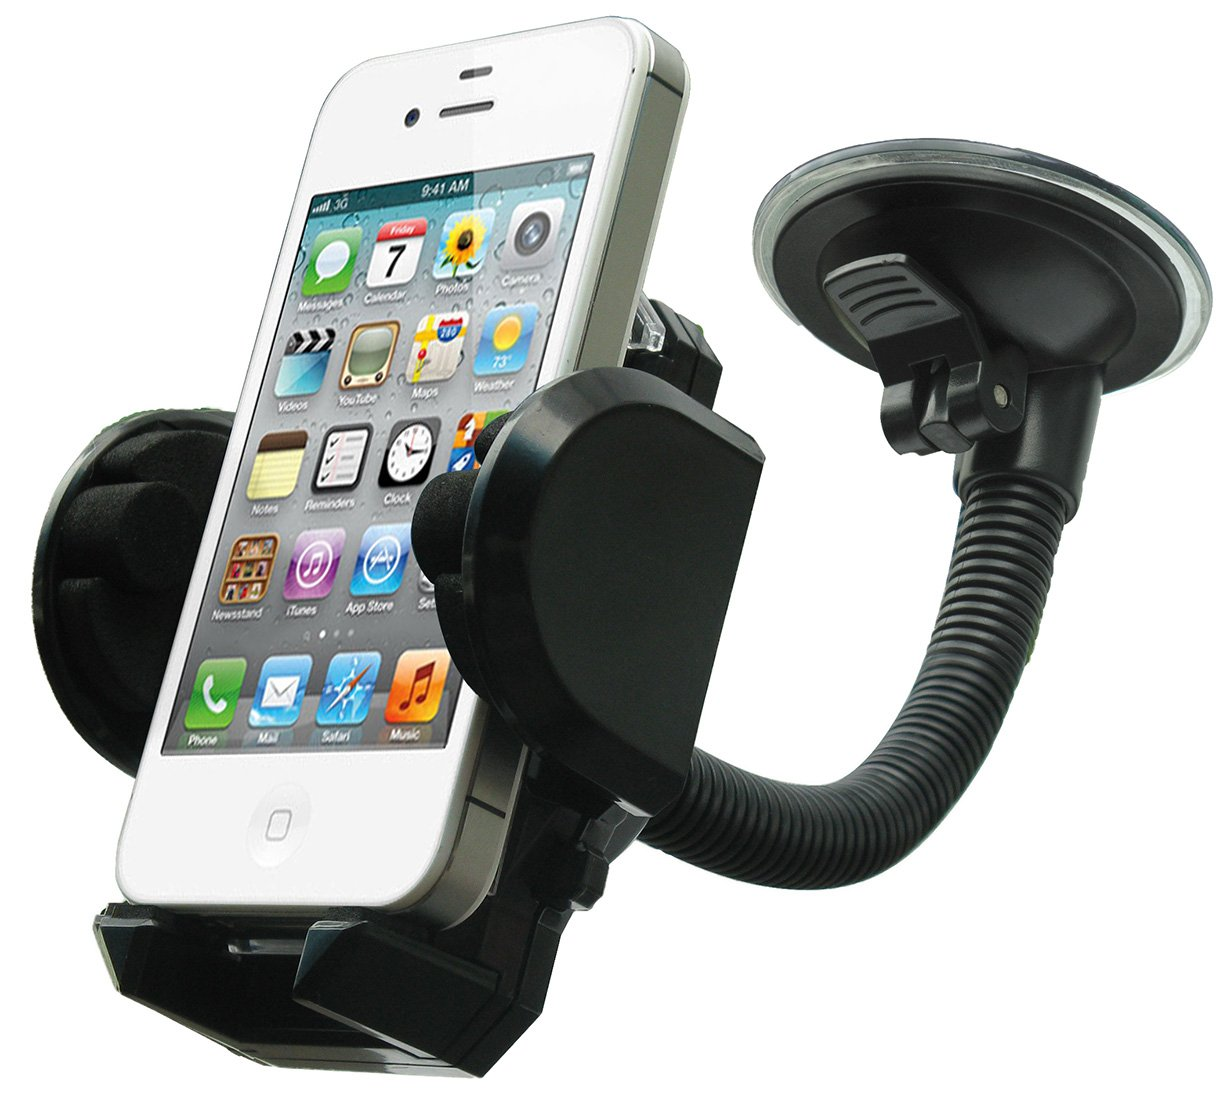 amazon com lotfancy cell phone holder mobile phone car mount